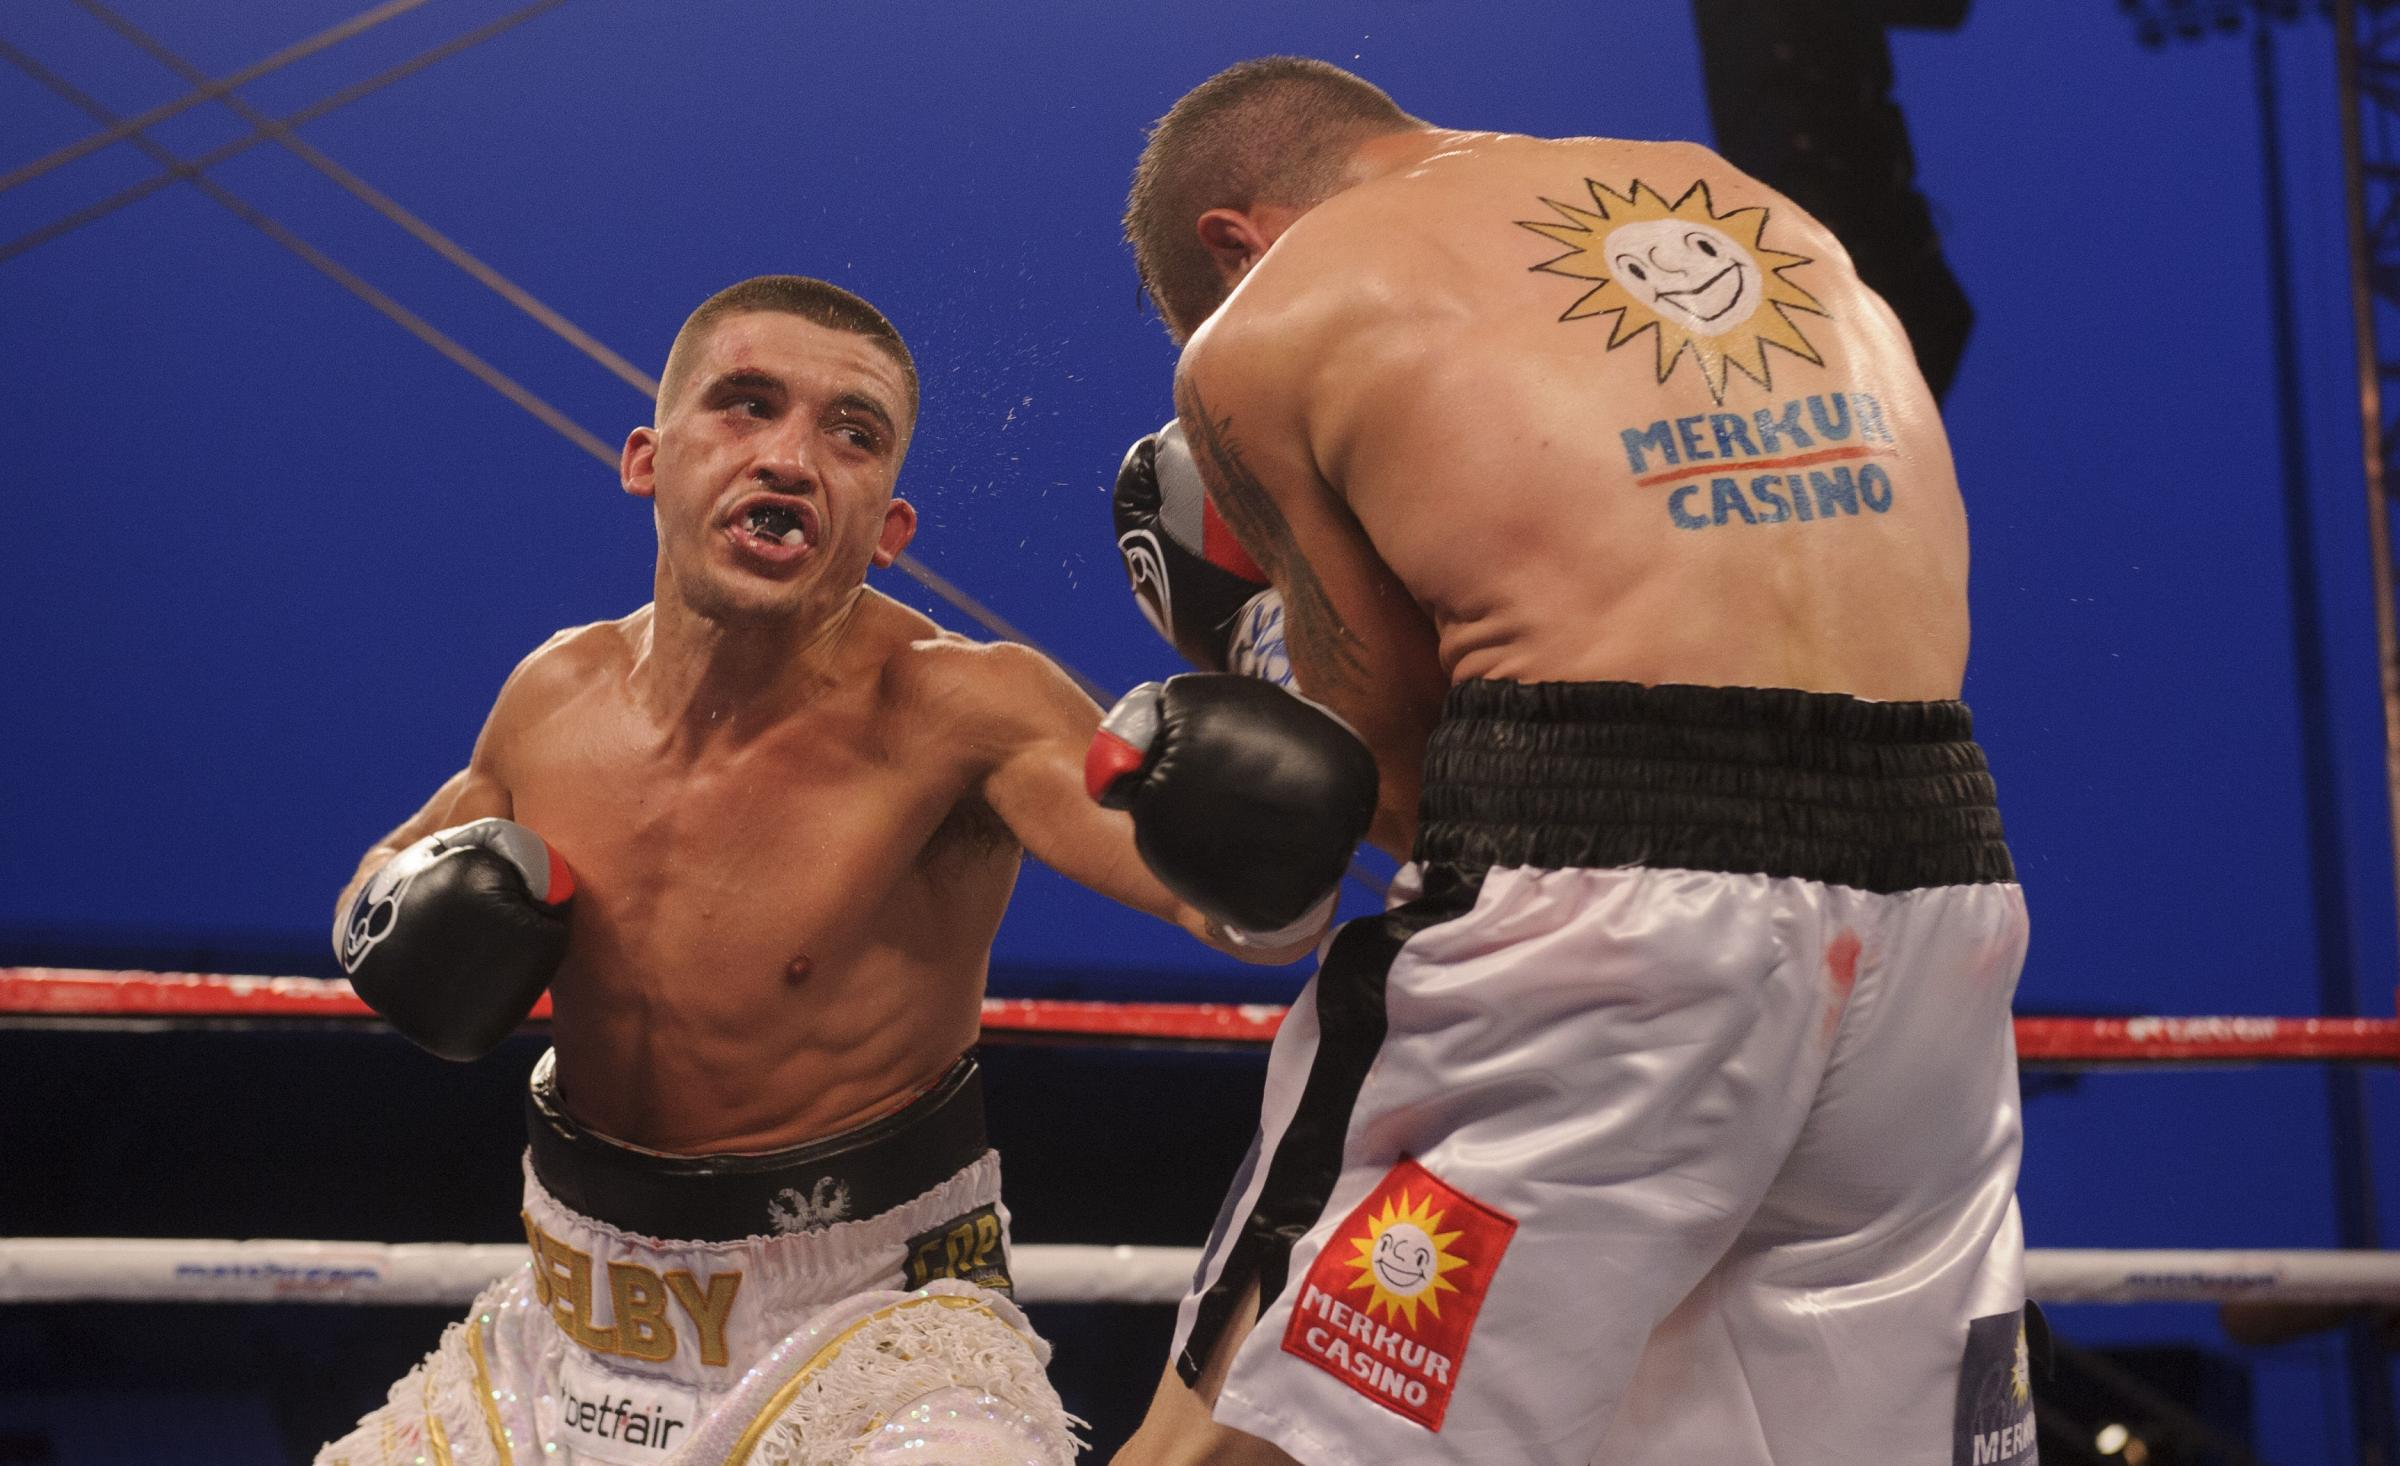 STATESIDE STAR: Lee Selby's